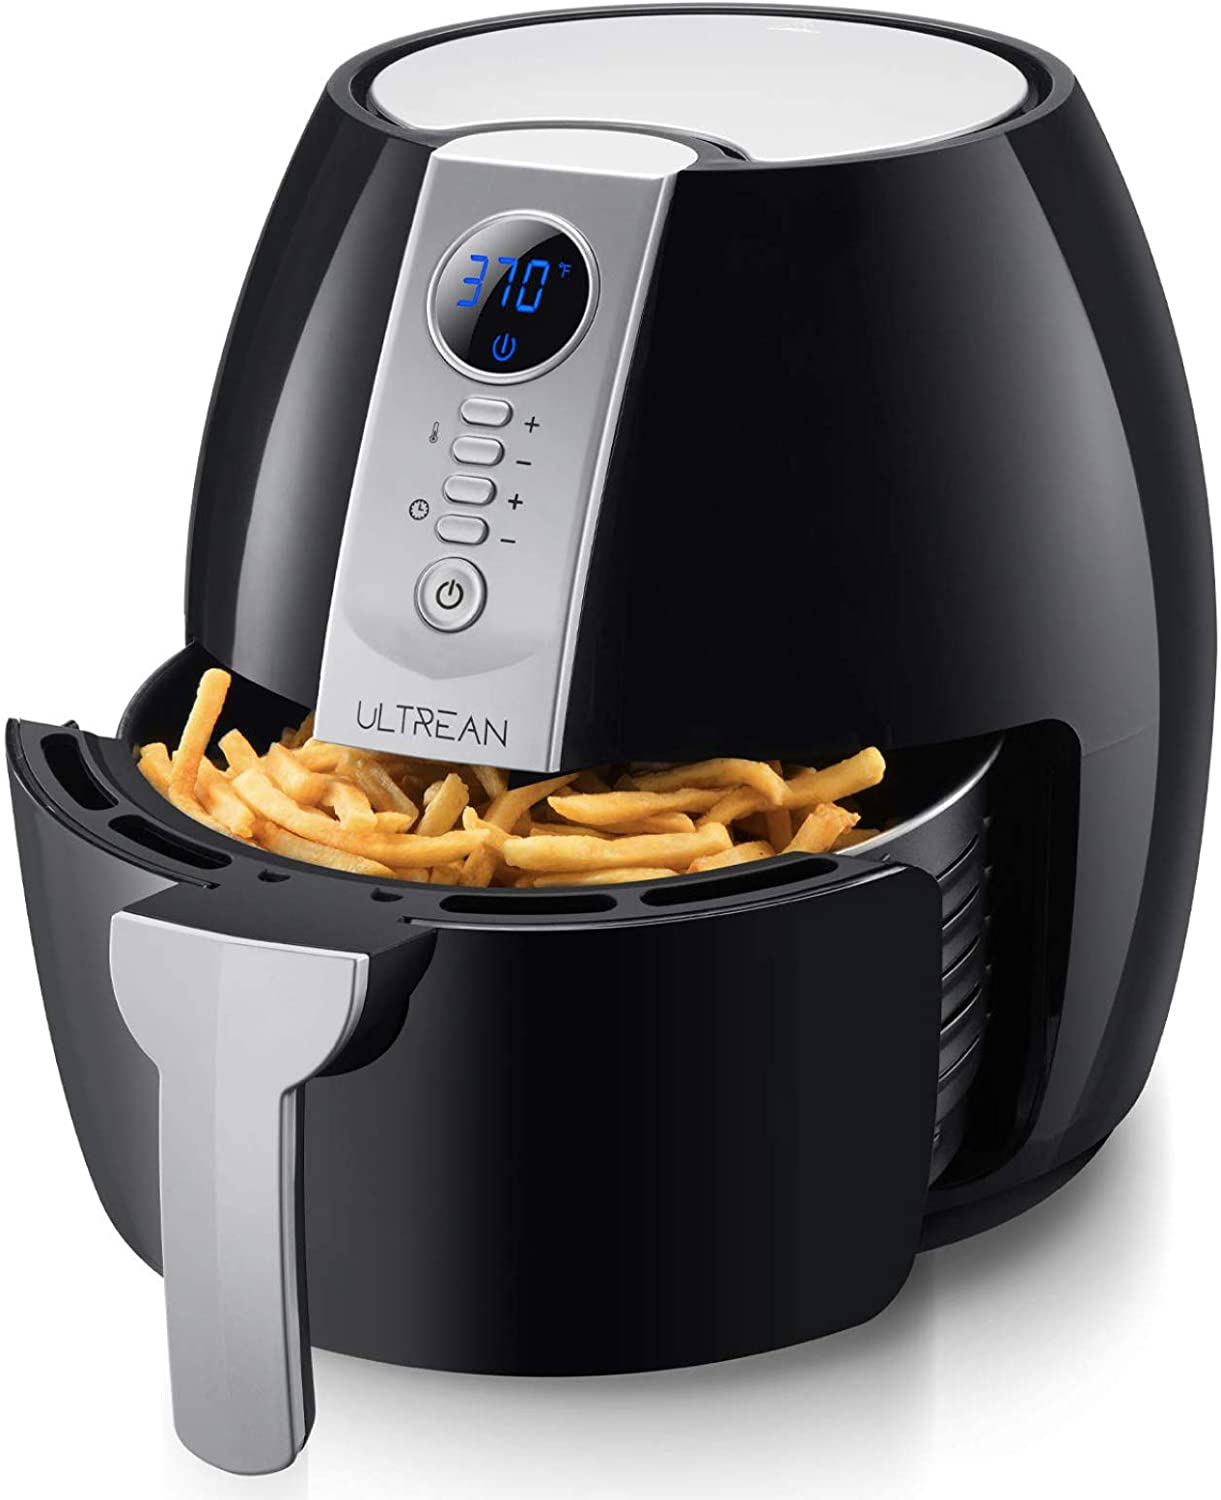 cooking-gifts-fryer